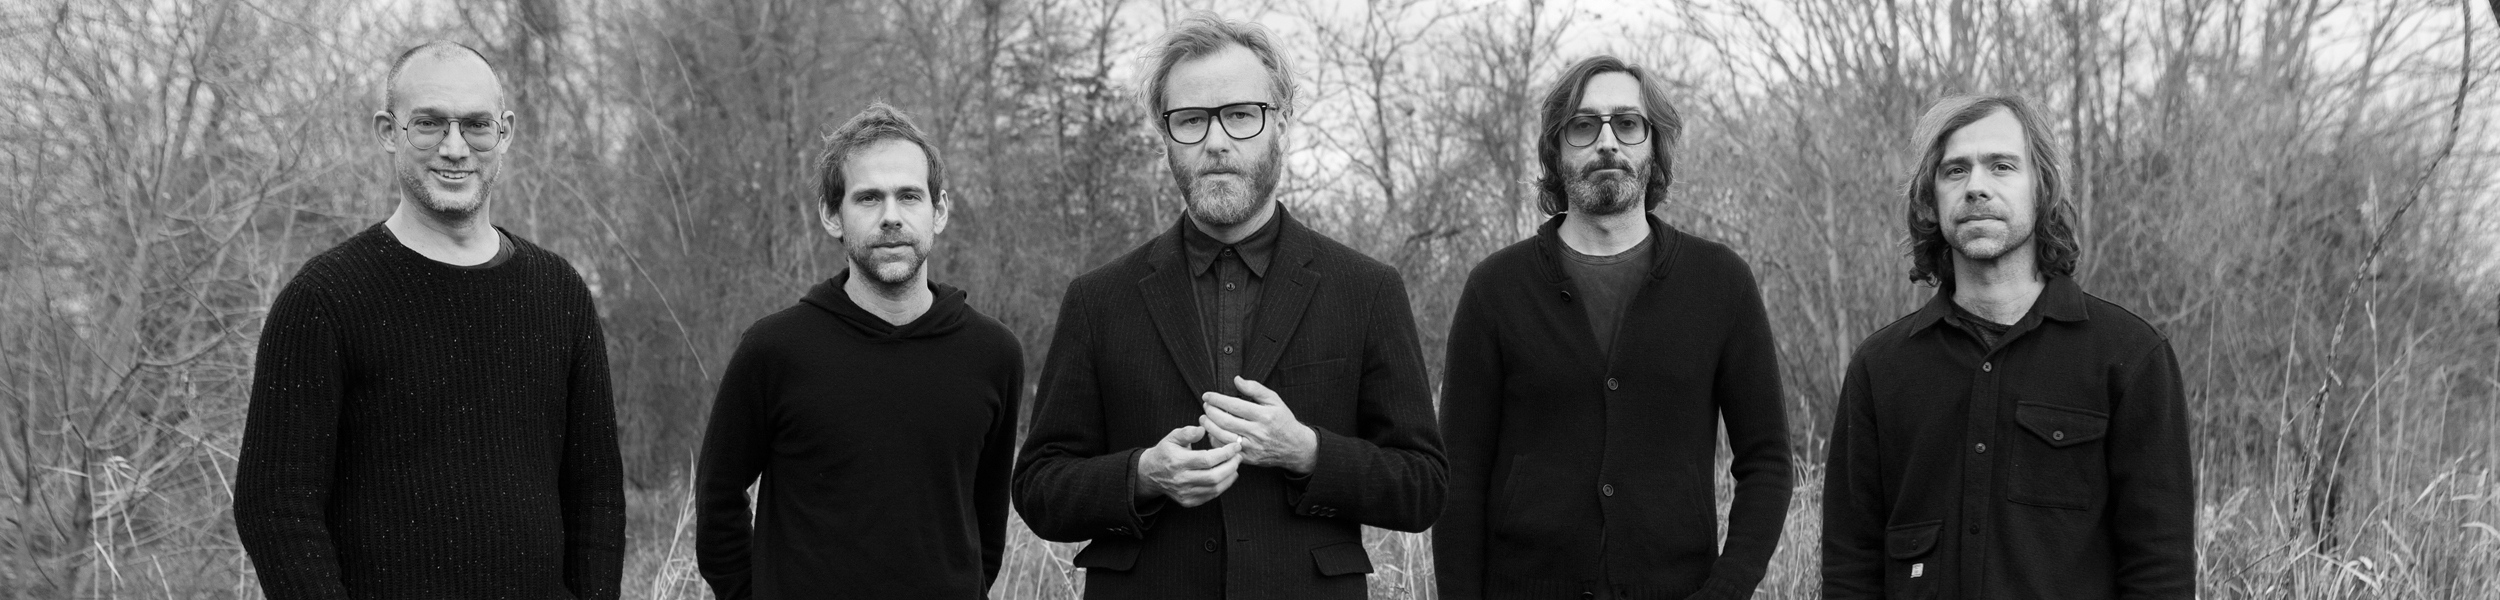 The National - Knotty Pine / So Far Around The Bend